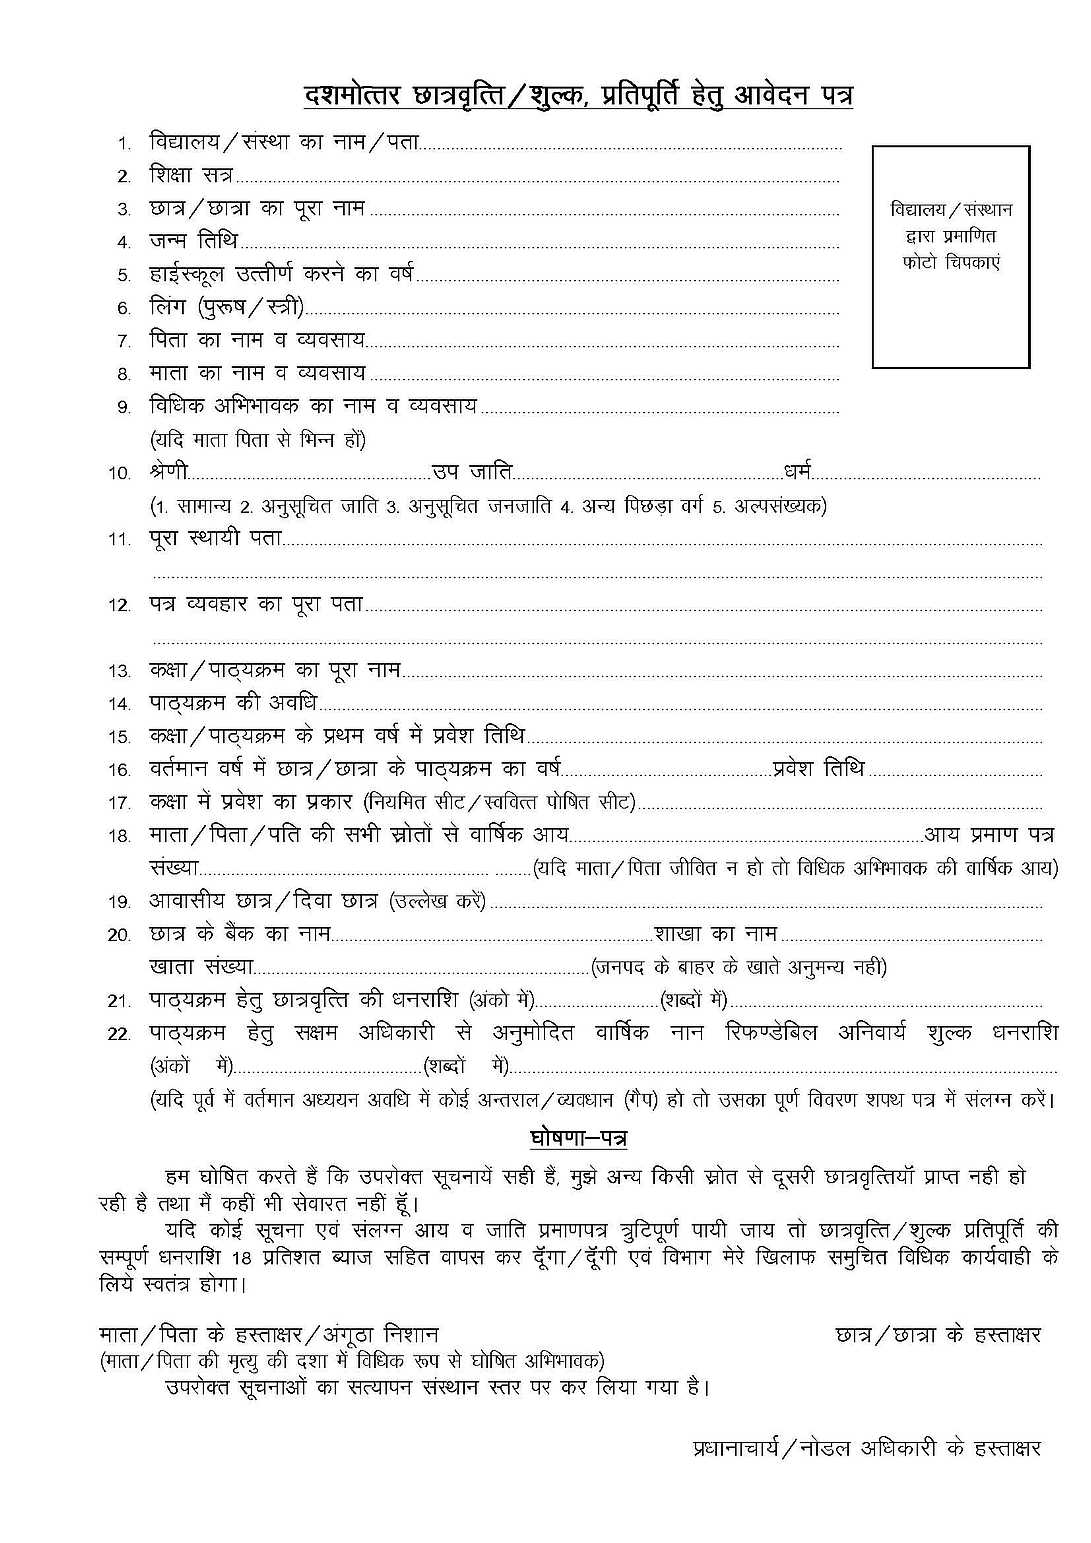 Scholarship Form of Lucknow University - 2017 2018 Student Forum